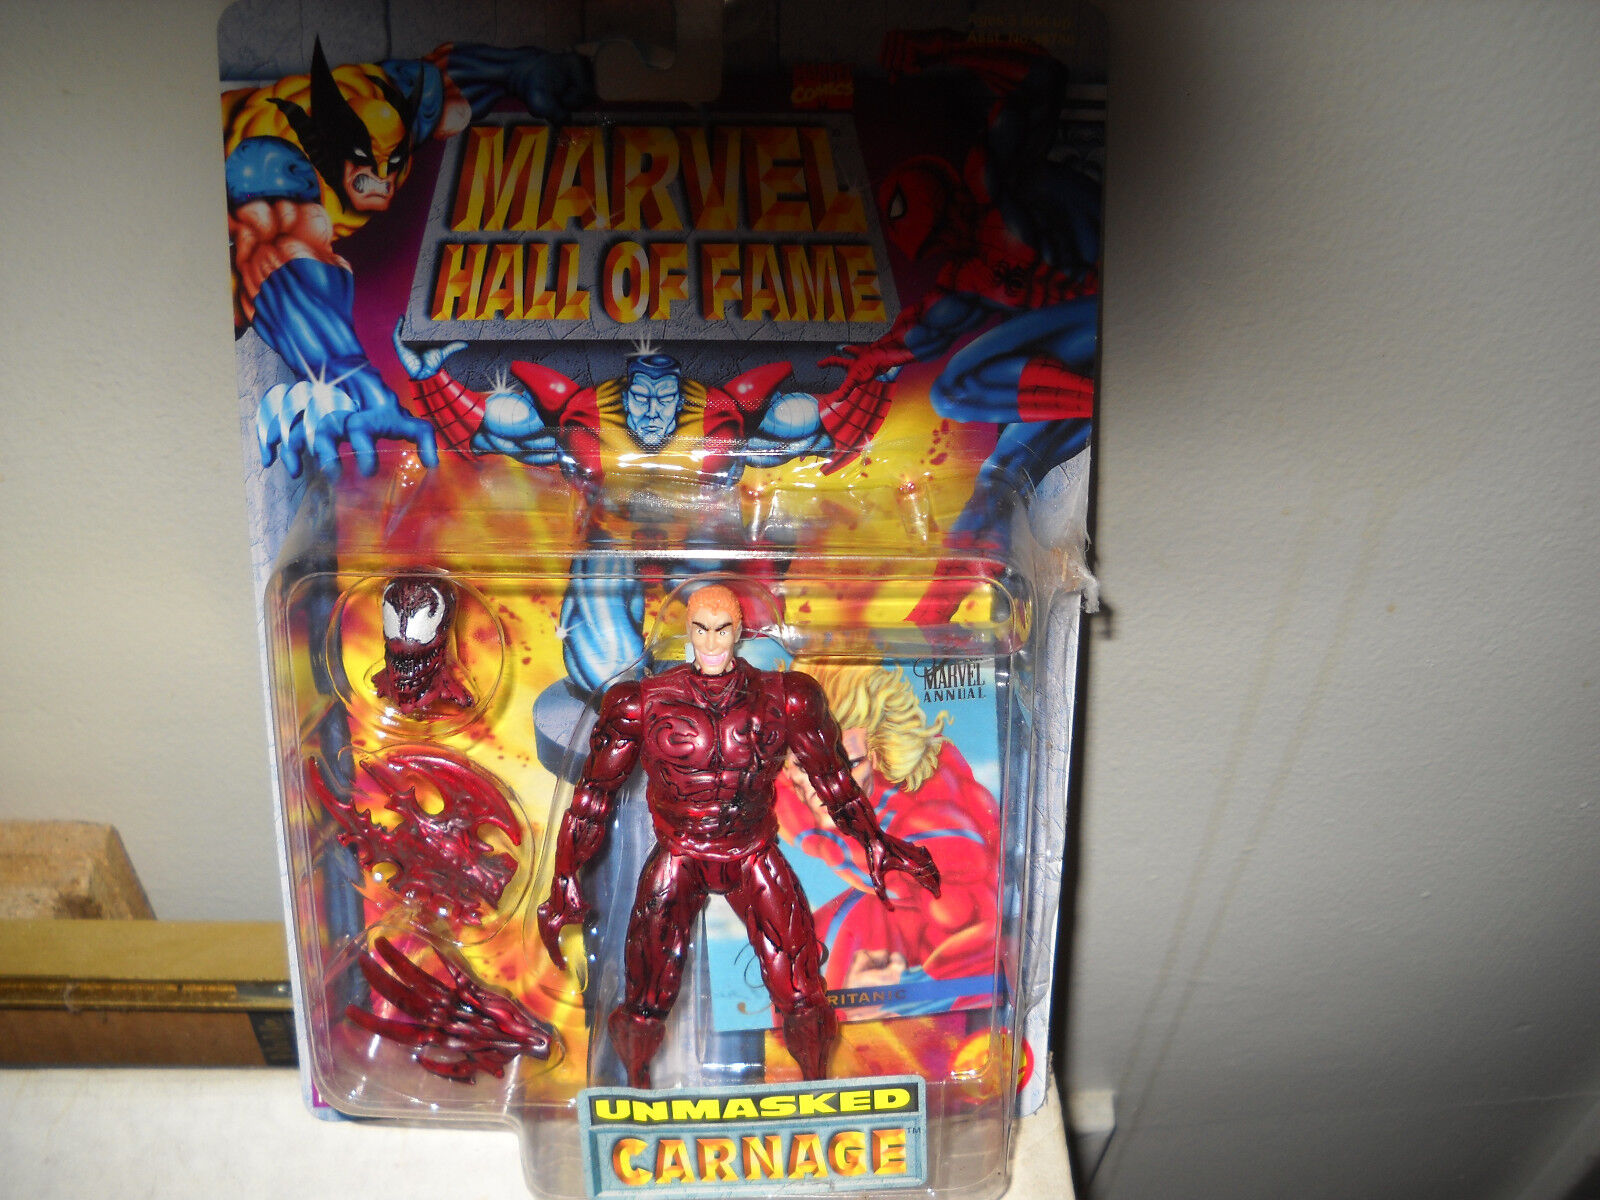 1997 MARVEL HALL OF FAME-UNMASKED CARNAGE